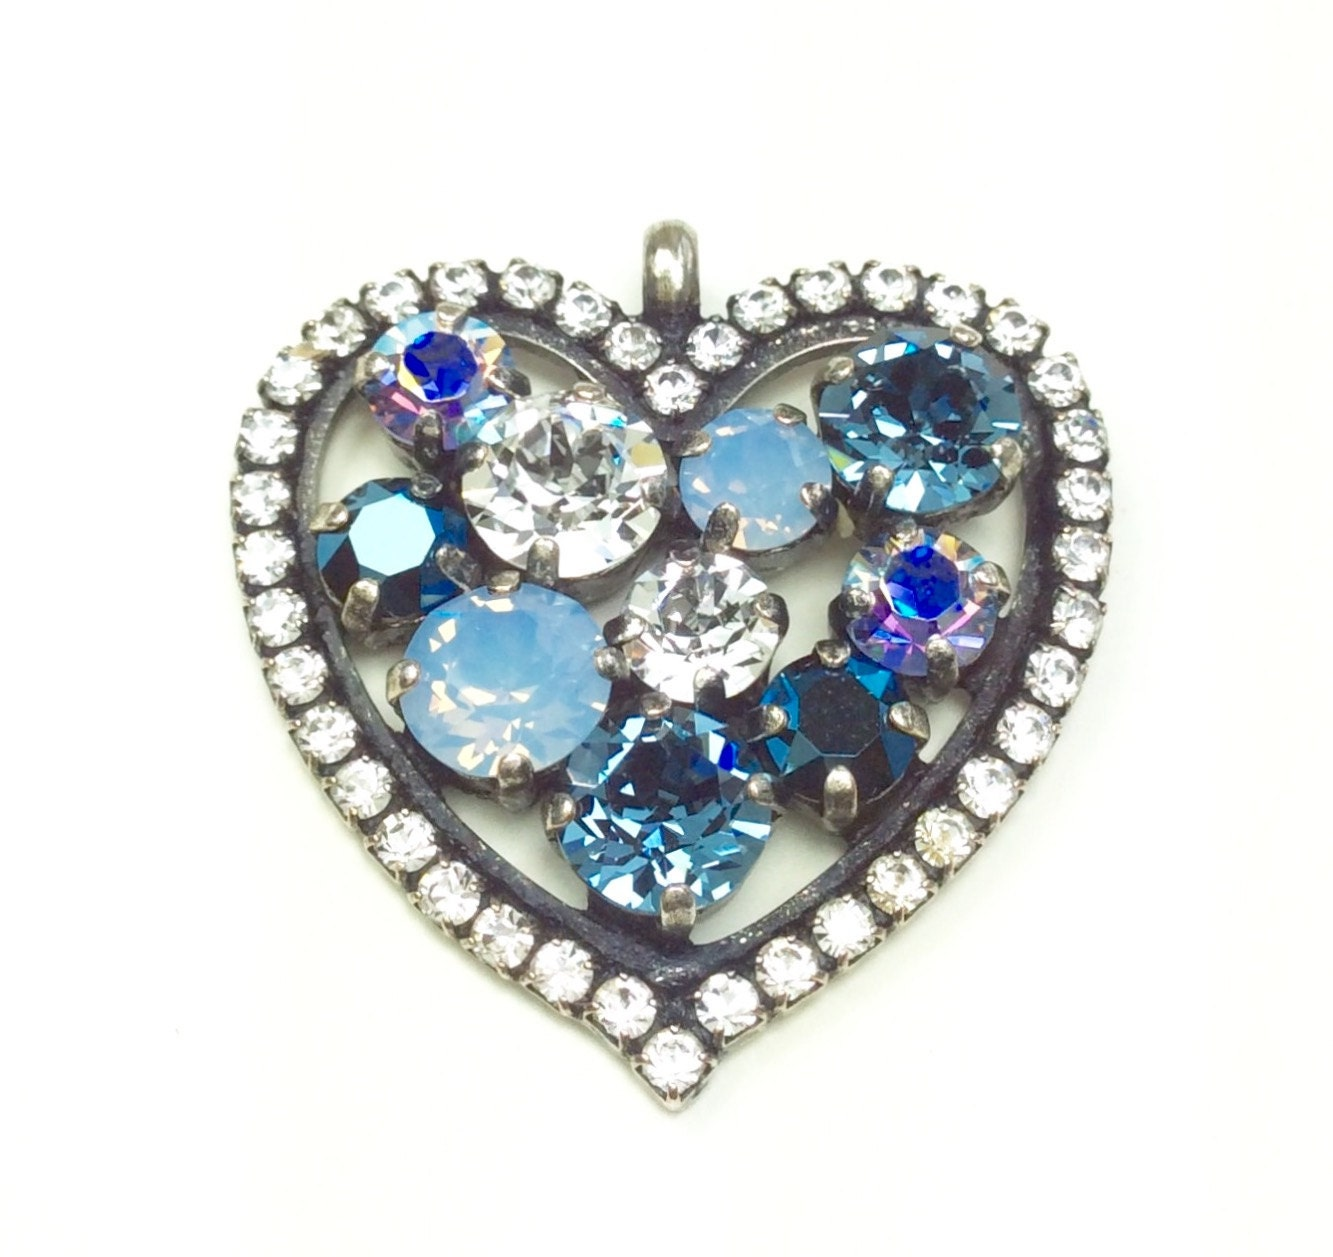 Swarovski Crystal - Heart Shaped - Add-On Charm - in Denim Blue a2b6e6b4e89a